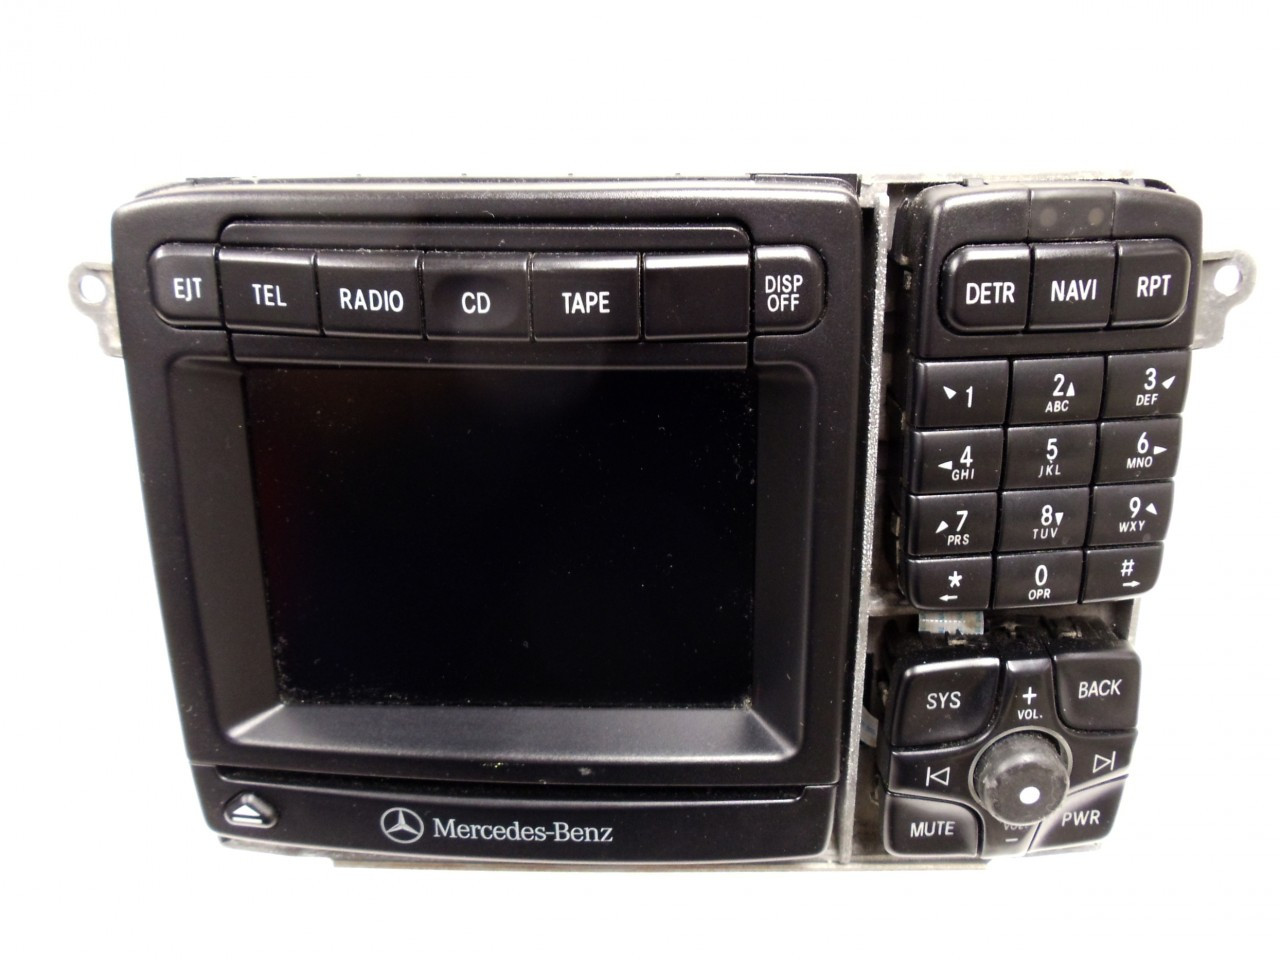 01 03 mercedes s class cl class navigation radio cd player. Black Bedroom Furniture Sets. Home Design Ideas